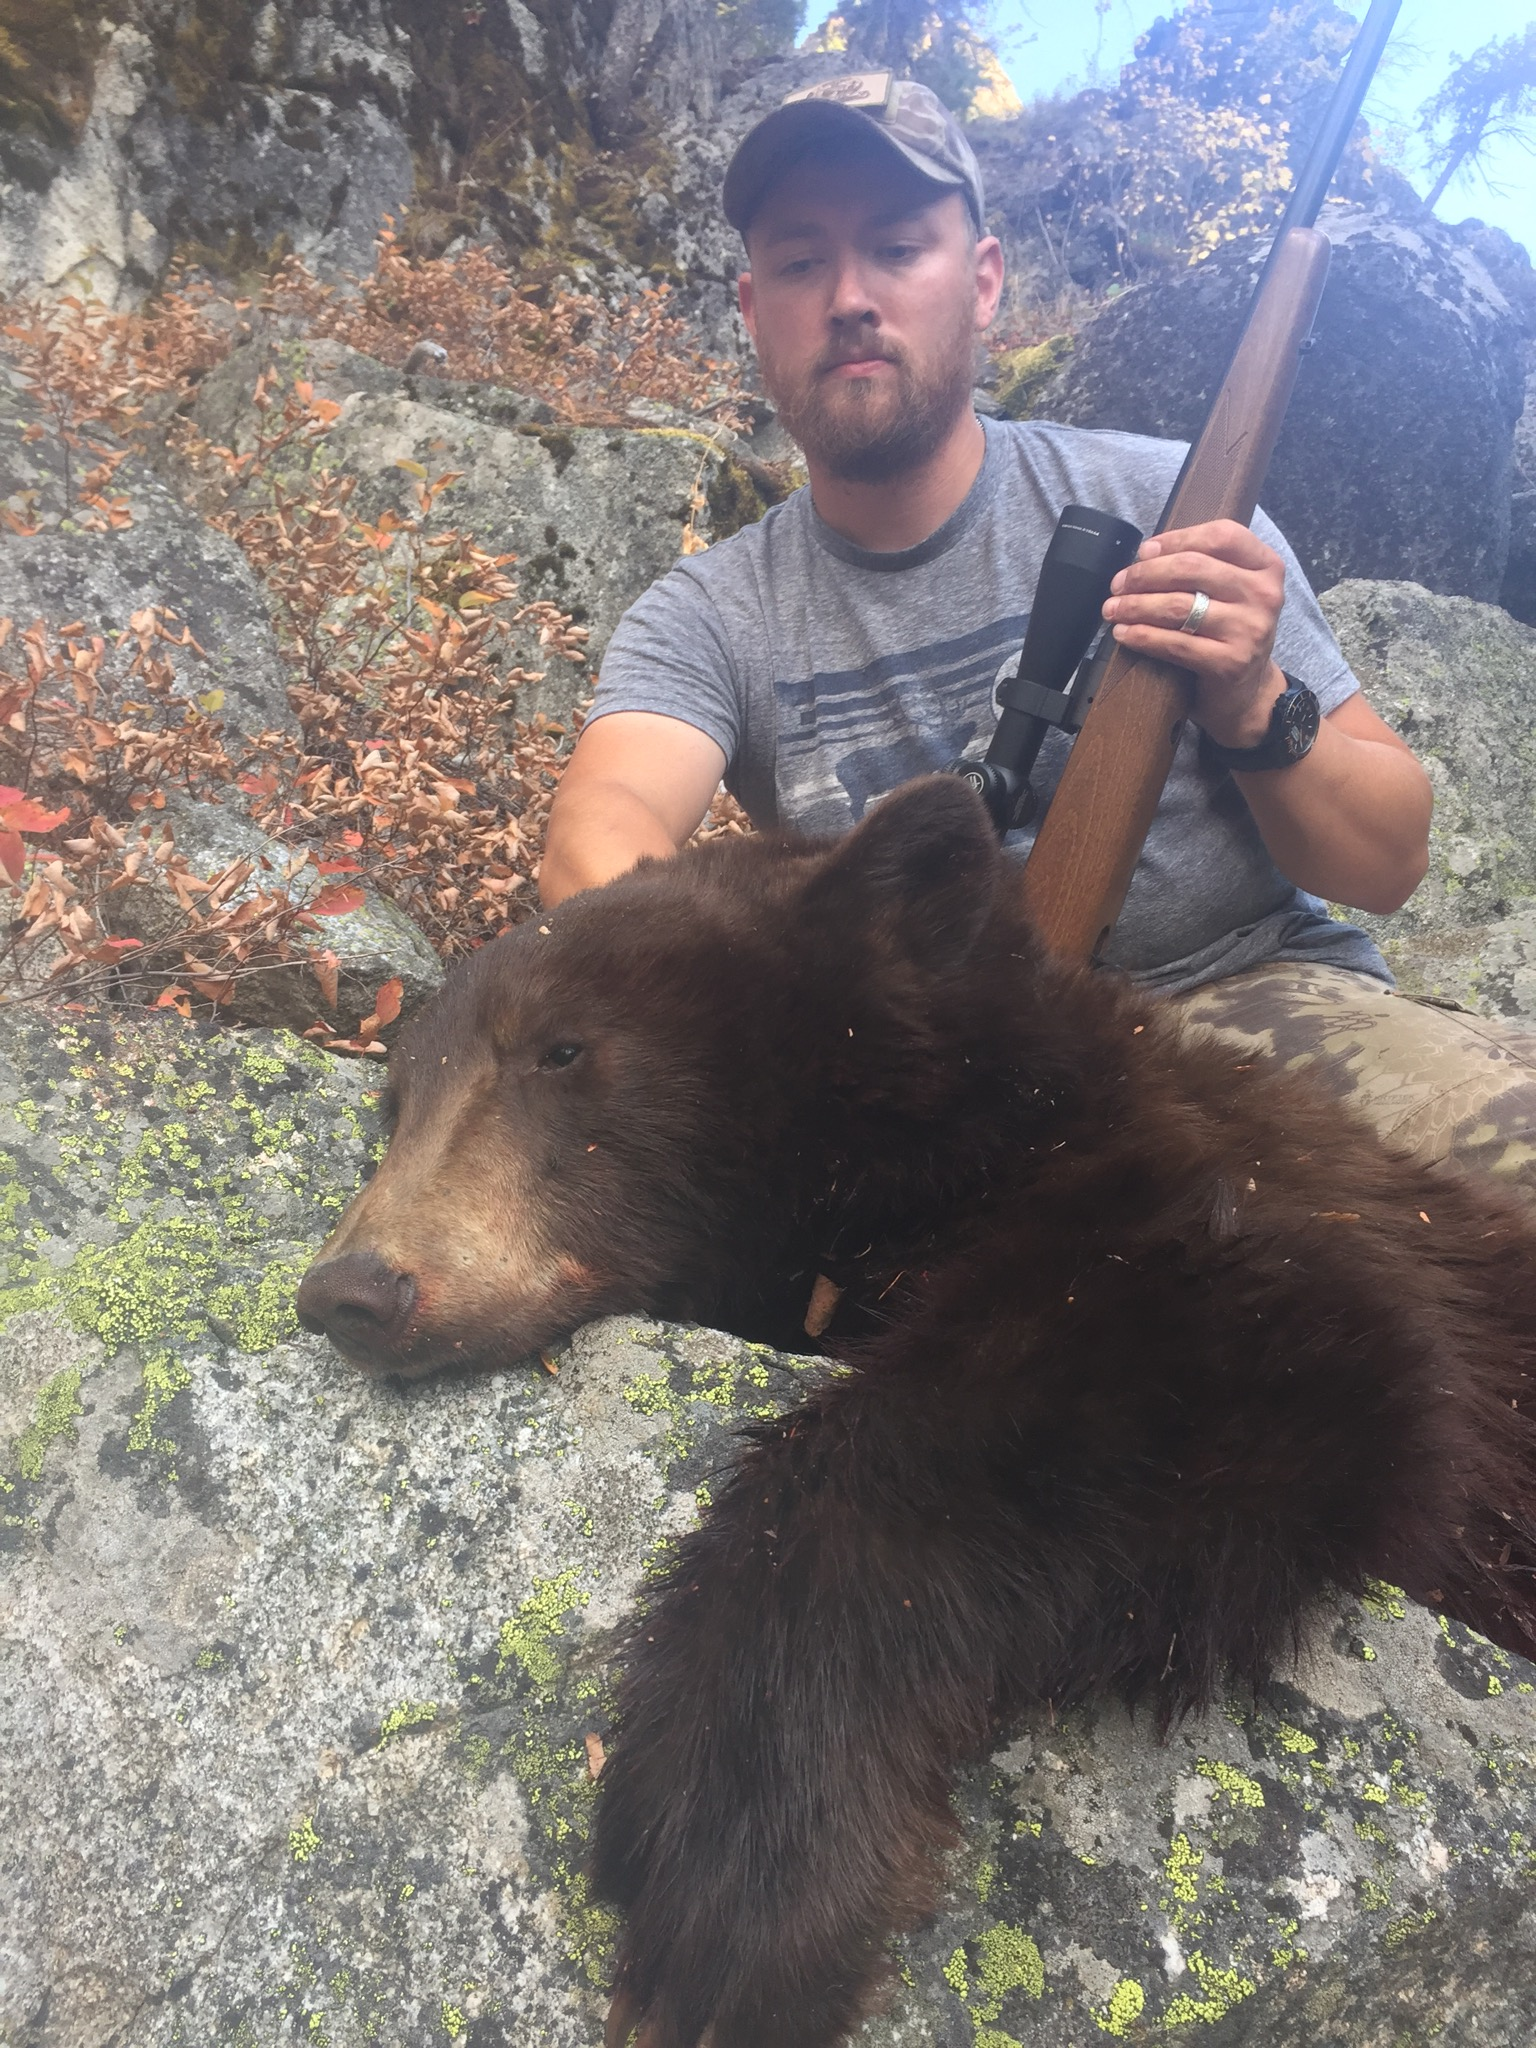 """""""...there is something different about shooting a bear from a deer. I thought of my family and thought of the meat I would be able to put on our table by taking this animal's life. I put the crosshairs back on the bear's chest, it was facing me, I squeezed the trigger."""""""